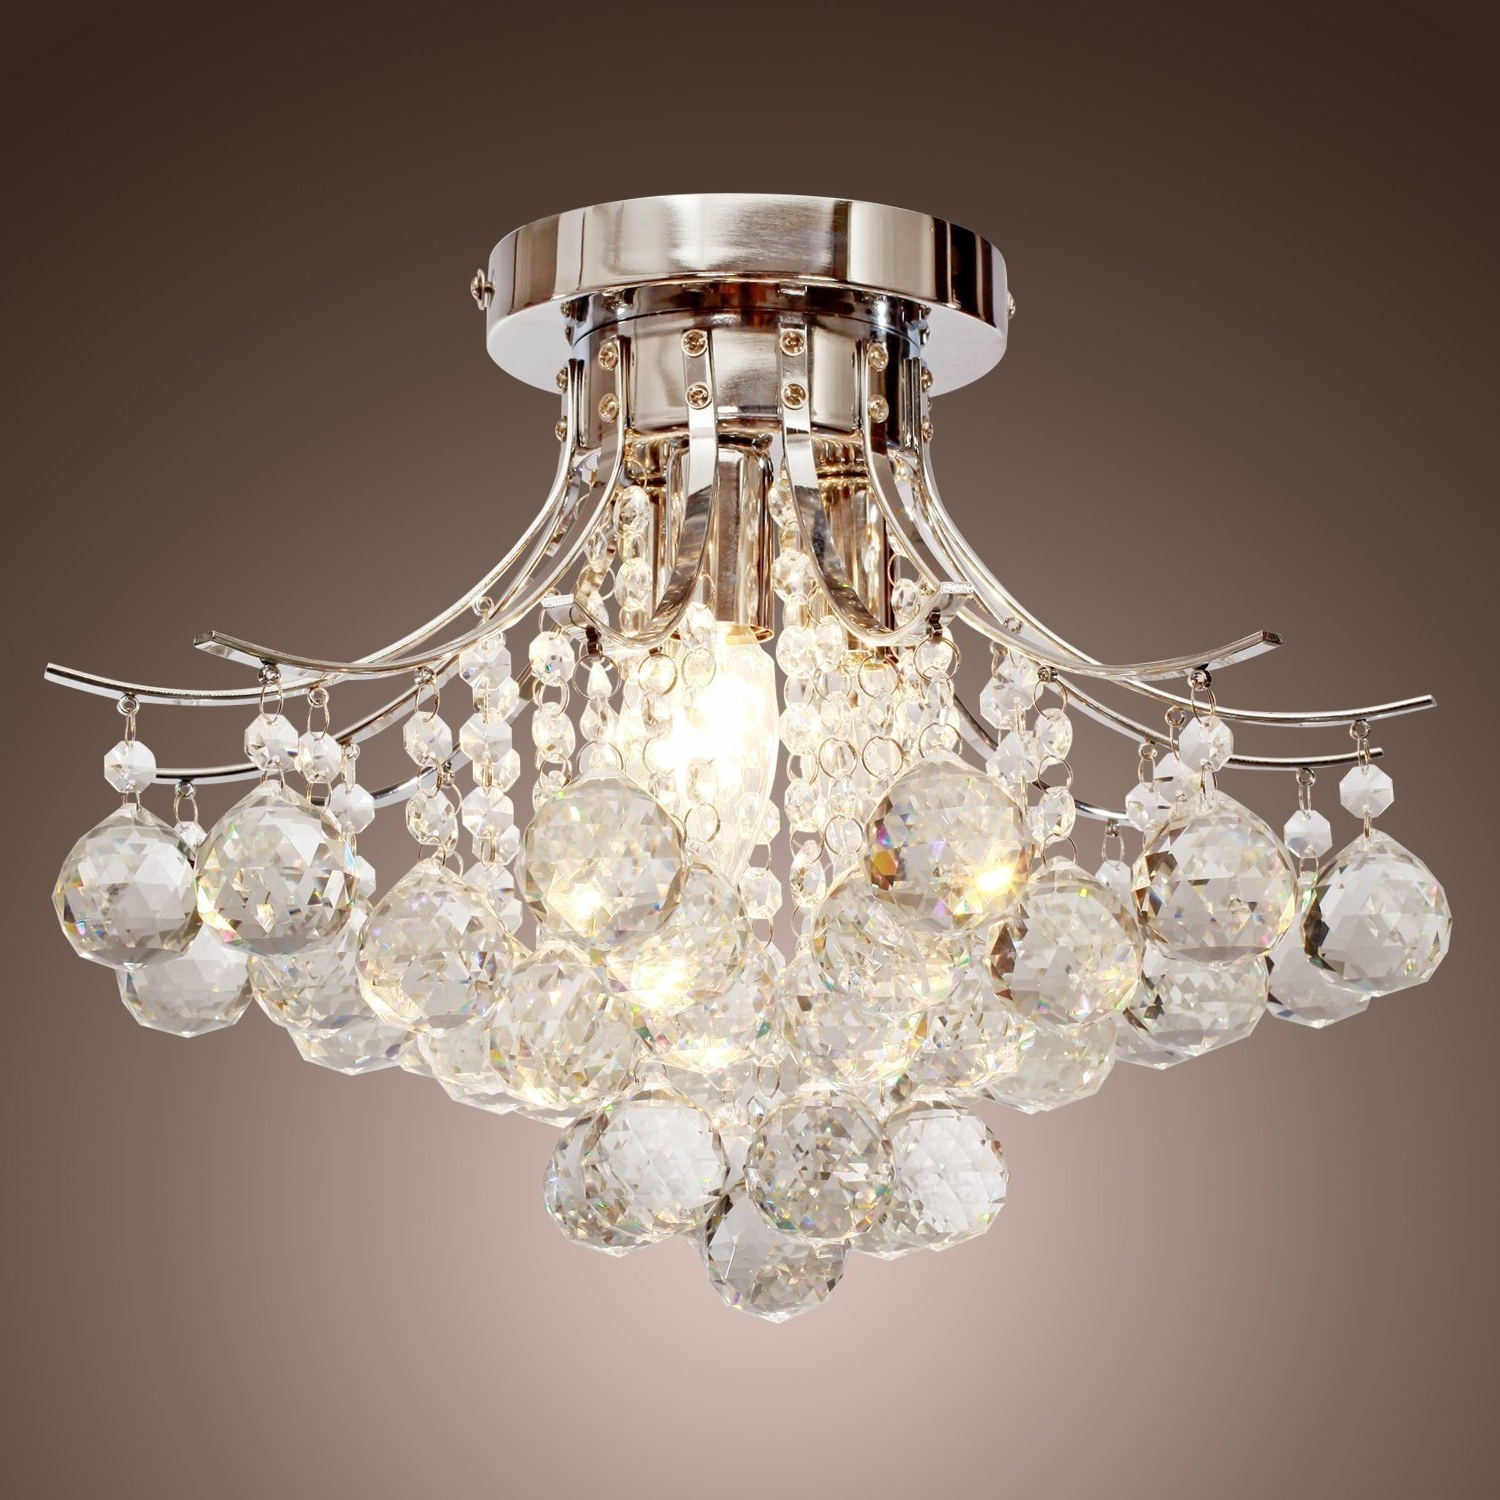 Newest Small Chandeliers For Low Ceilings Intended For Light : Living Room Ceiling Lights Close To Flush Mount Lighting (View 7 of 15)